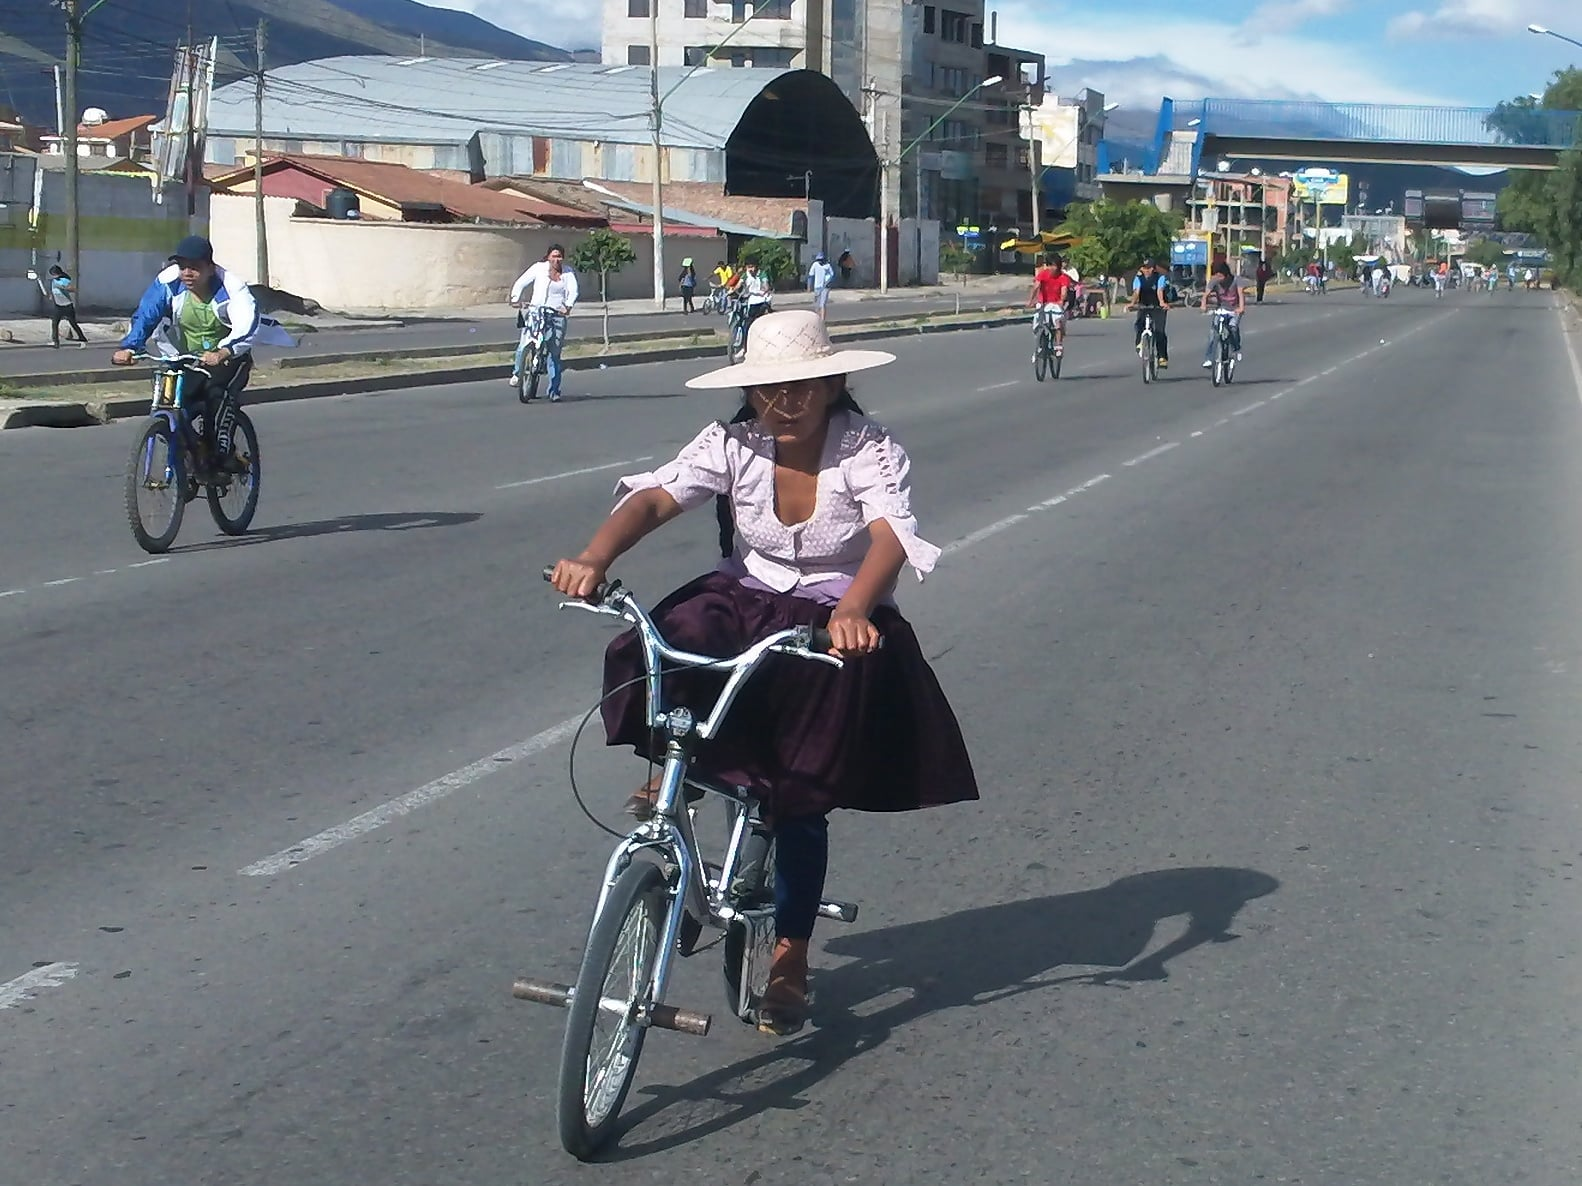 Dia del Peton allows everyone to take to the streets on bikes...all types of bikes.